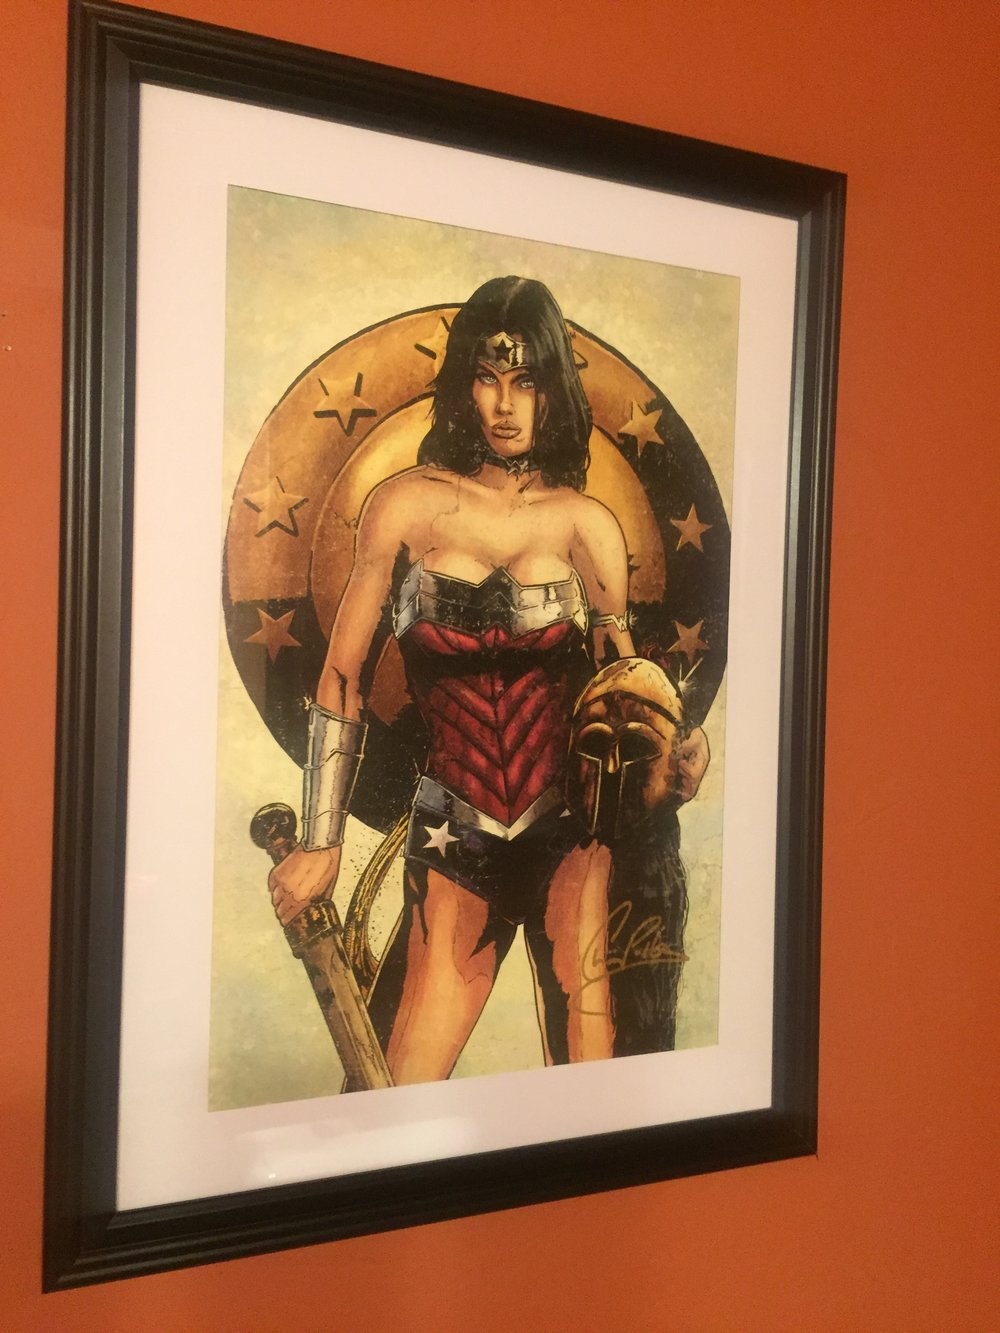 [ANother Wonder Woman Picutre in Jaz's Home -- PHOTO COPYRIGHT 2016 BY JAZ PRIMO]